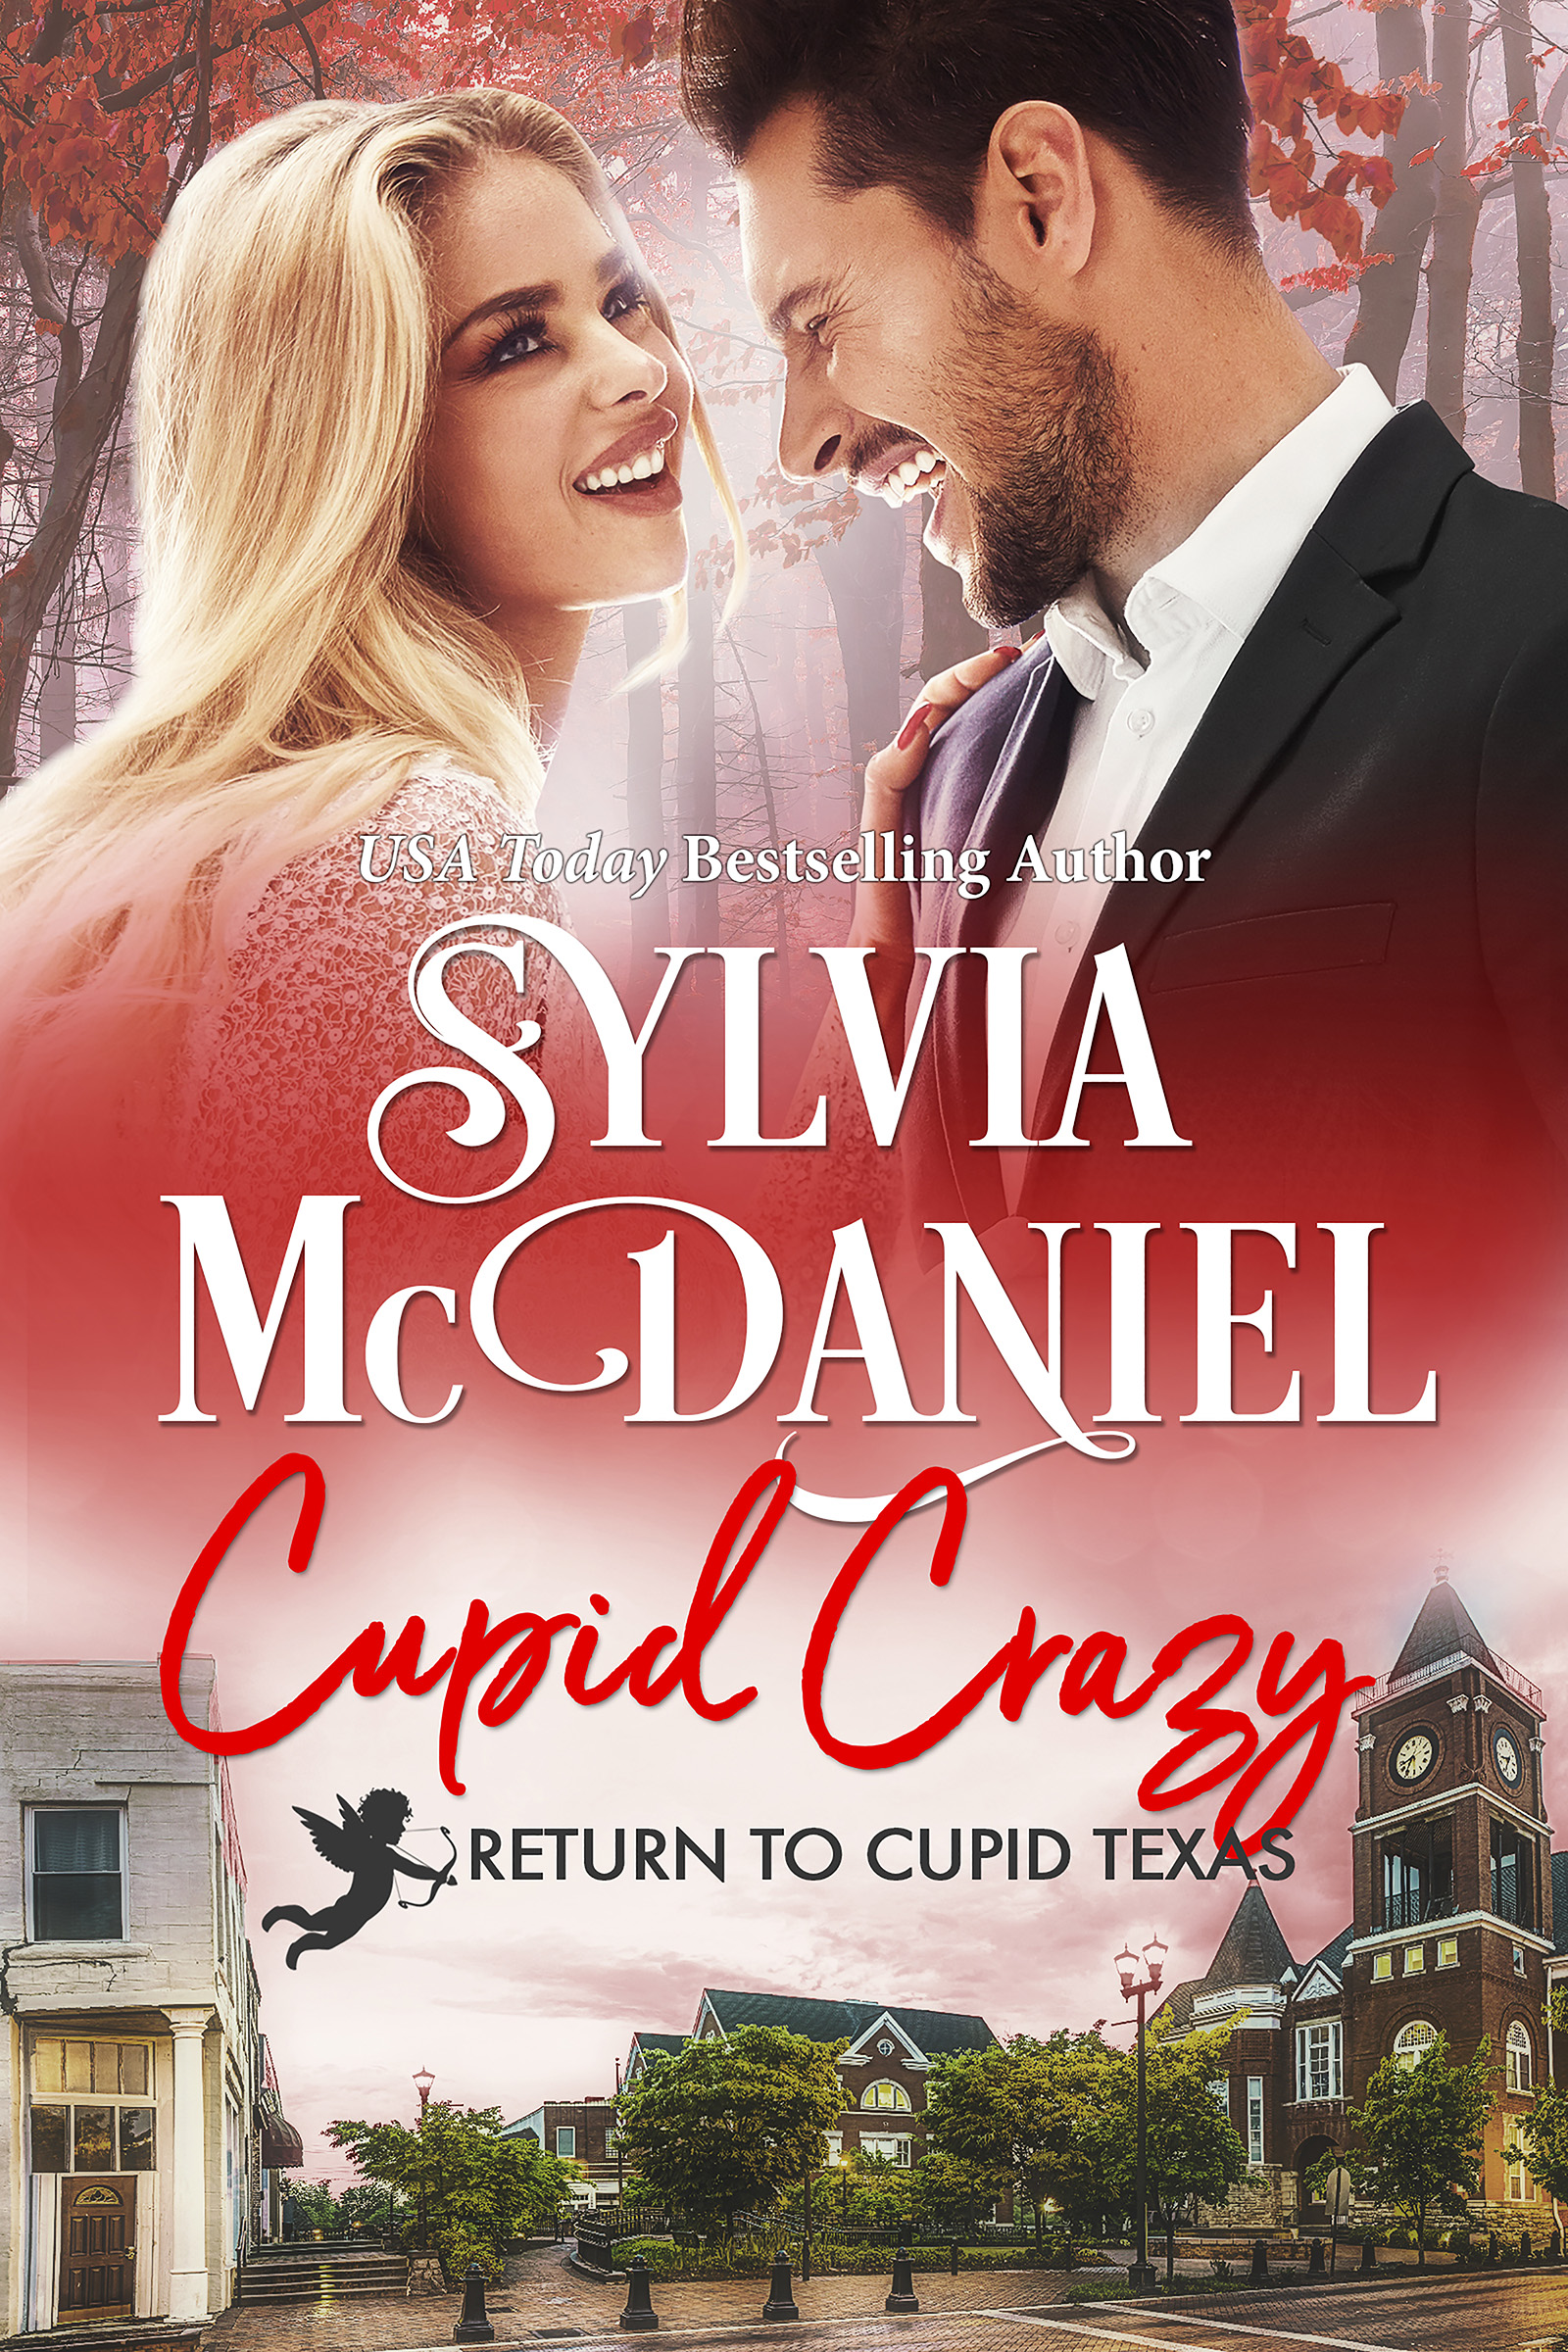 Cover of Cupid Crazy by Sylvia McDaniel. Blonde woman gazing at a handsome dark haired man.